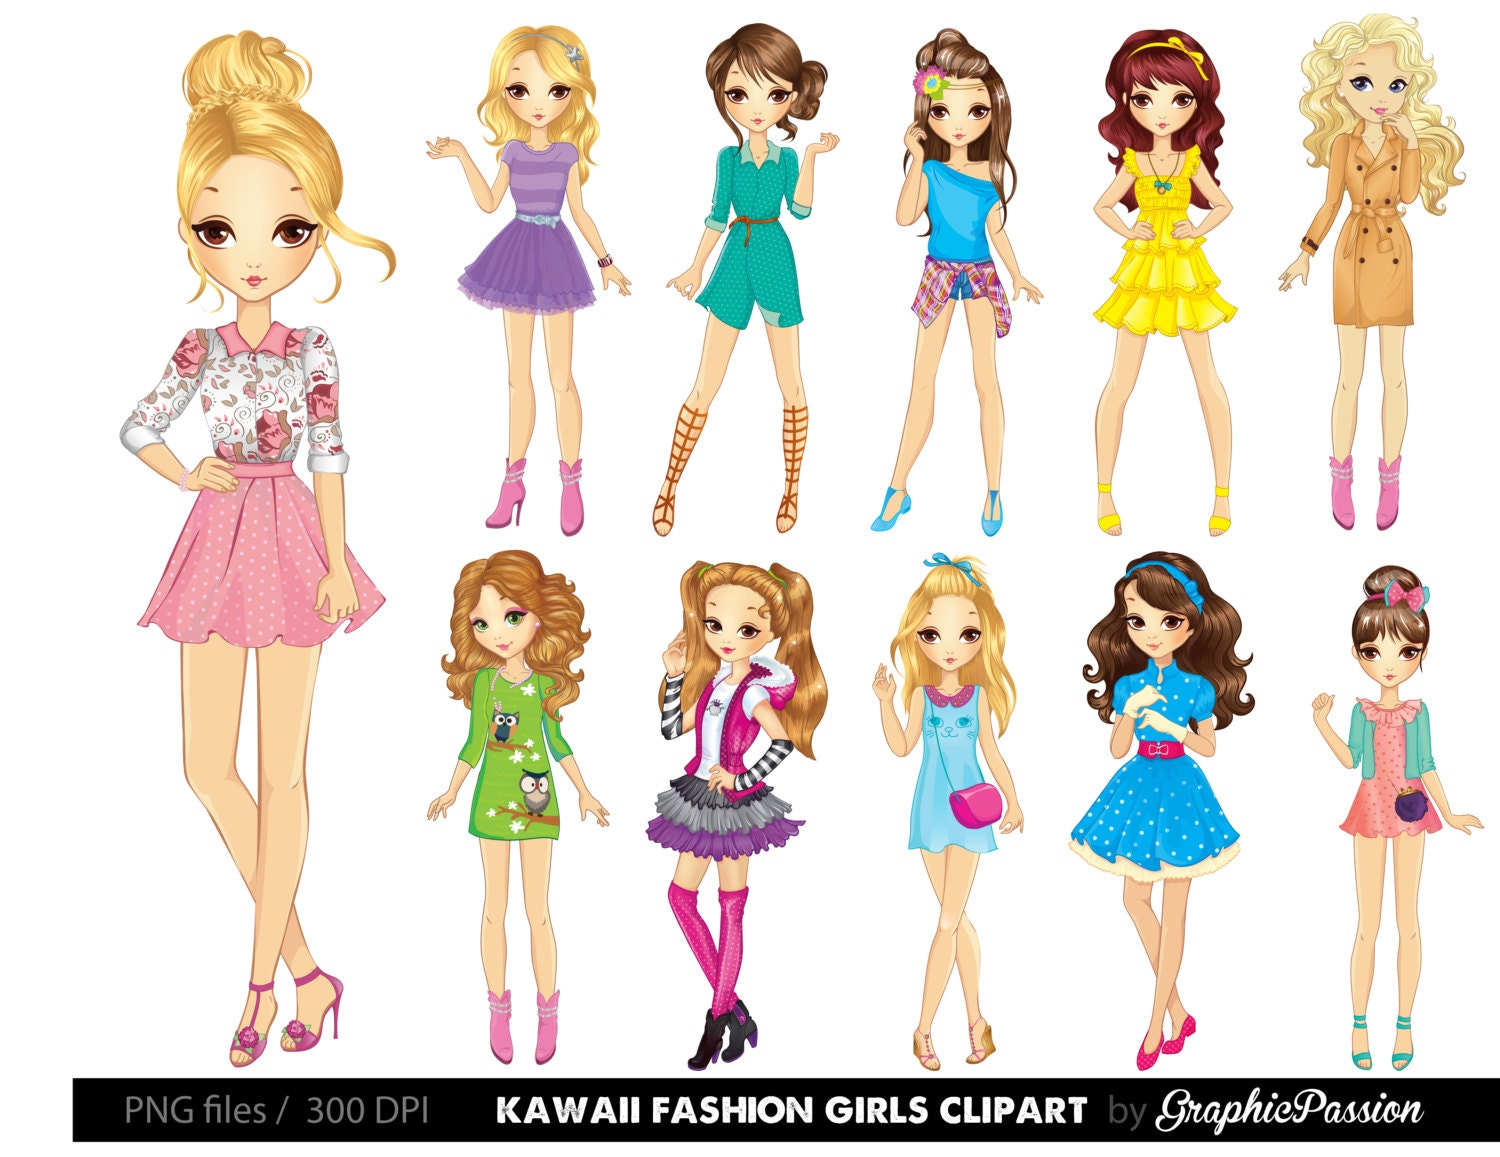 Cartoon girl clipart Kawaii girls clipart Fashion girls clipart ...